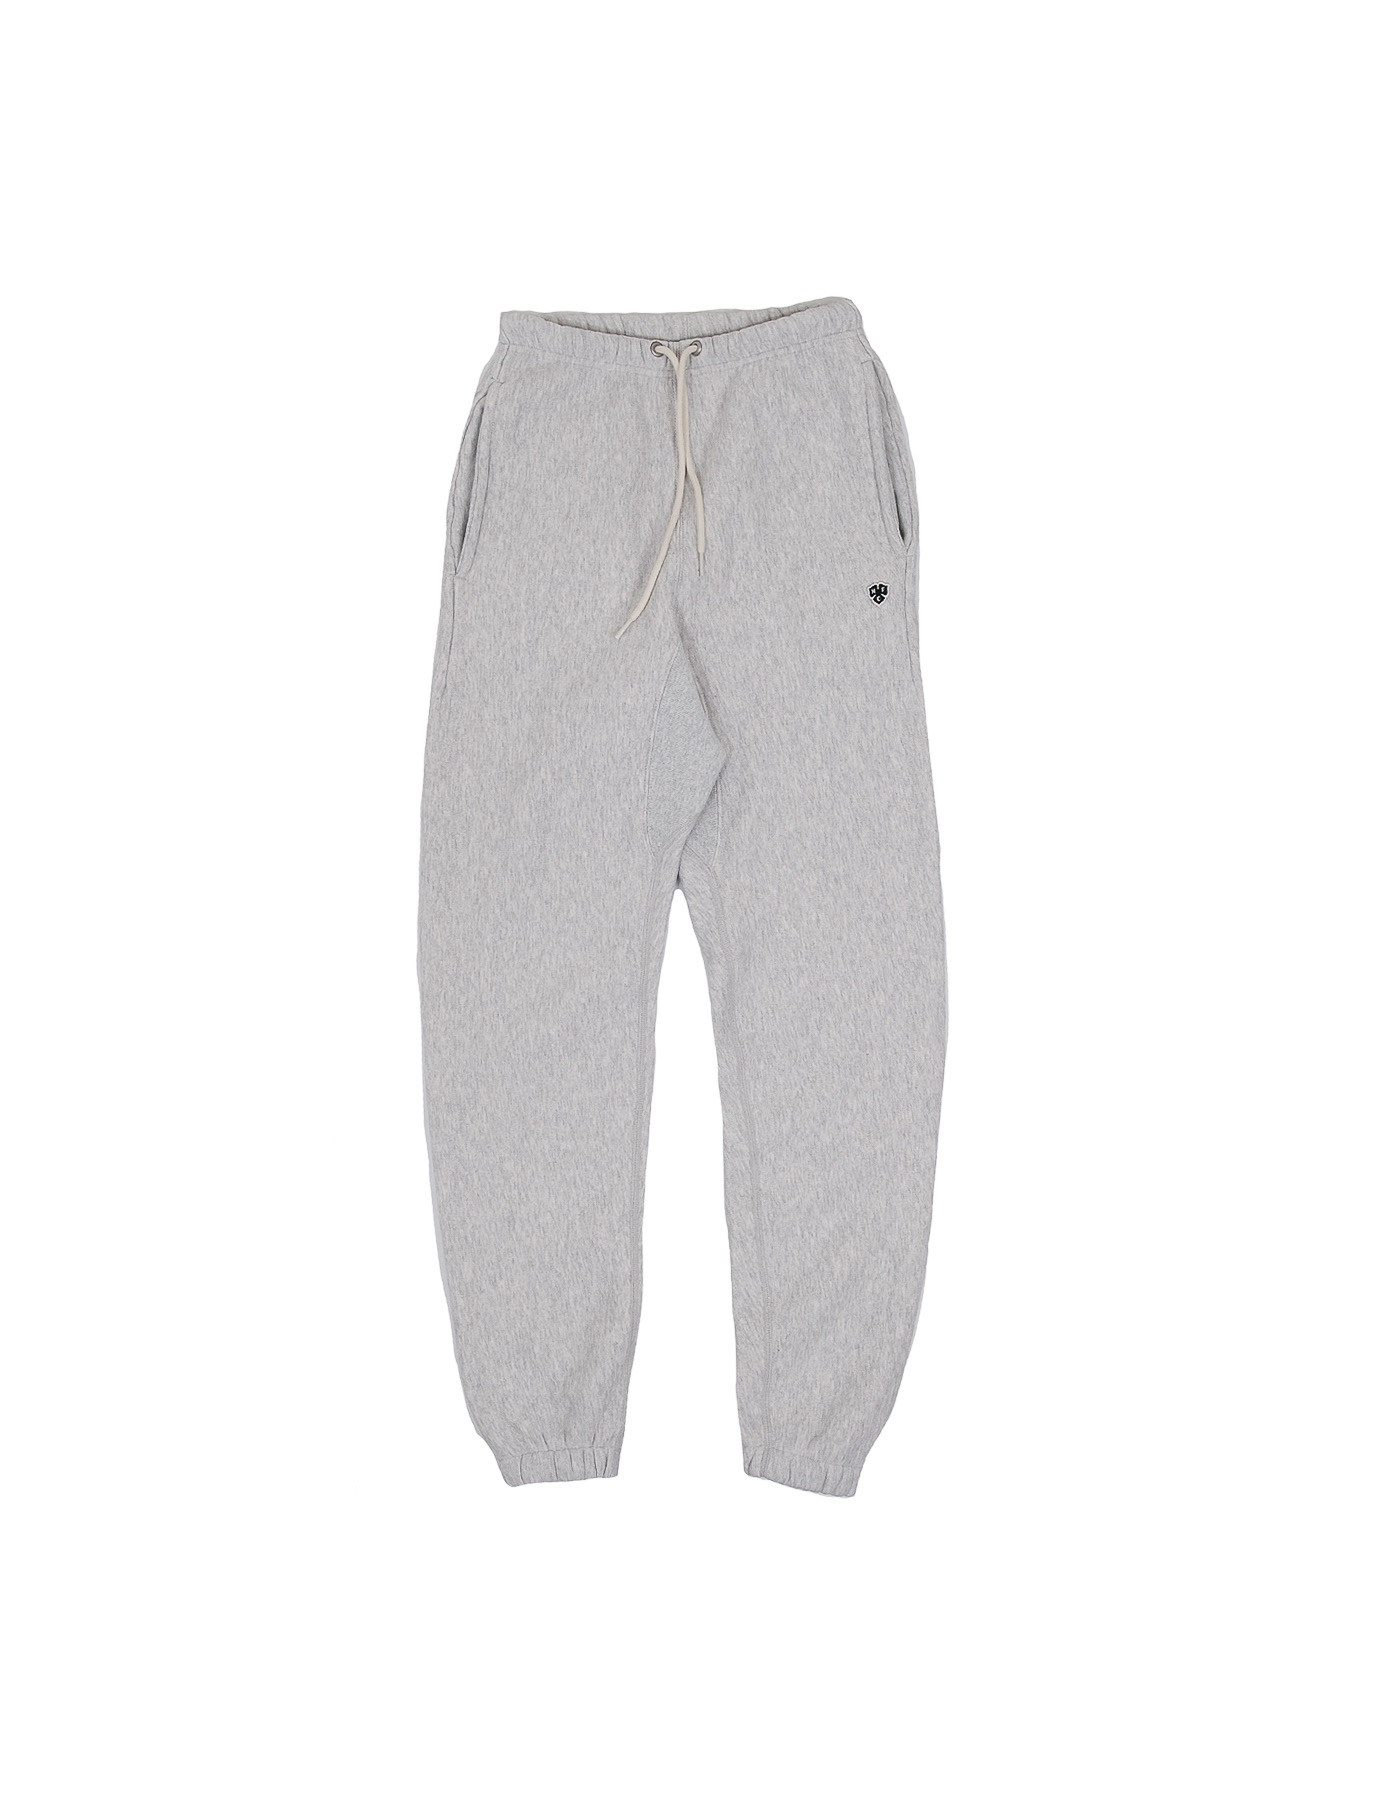 334 REVERSE FLEECE SWEATPANTS (SLIM-FIT) / M.GREY(1%)